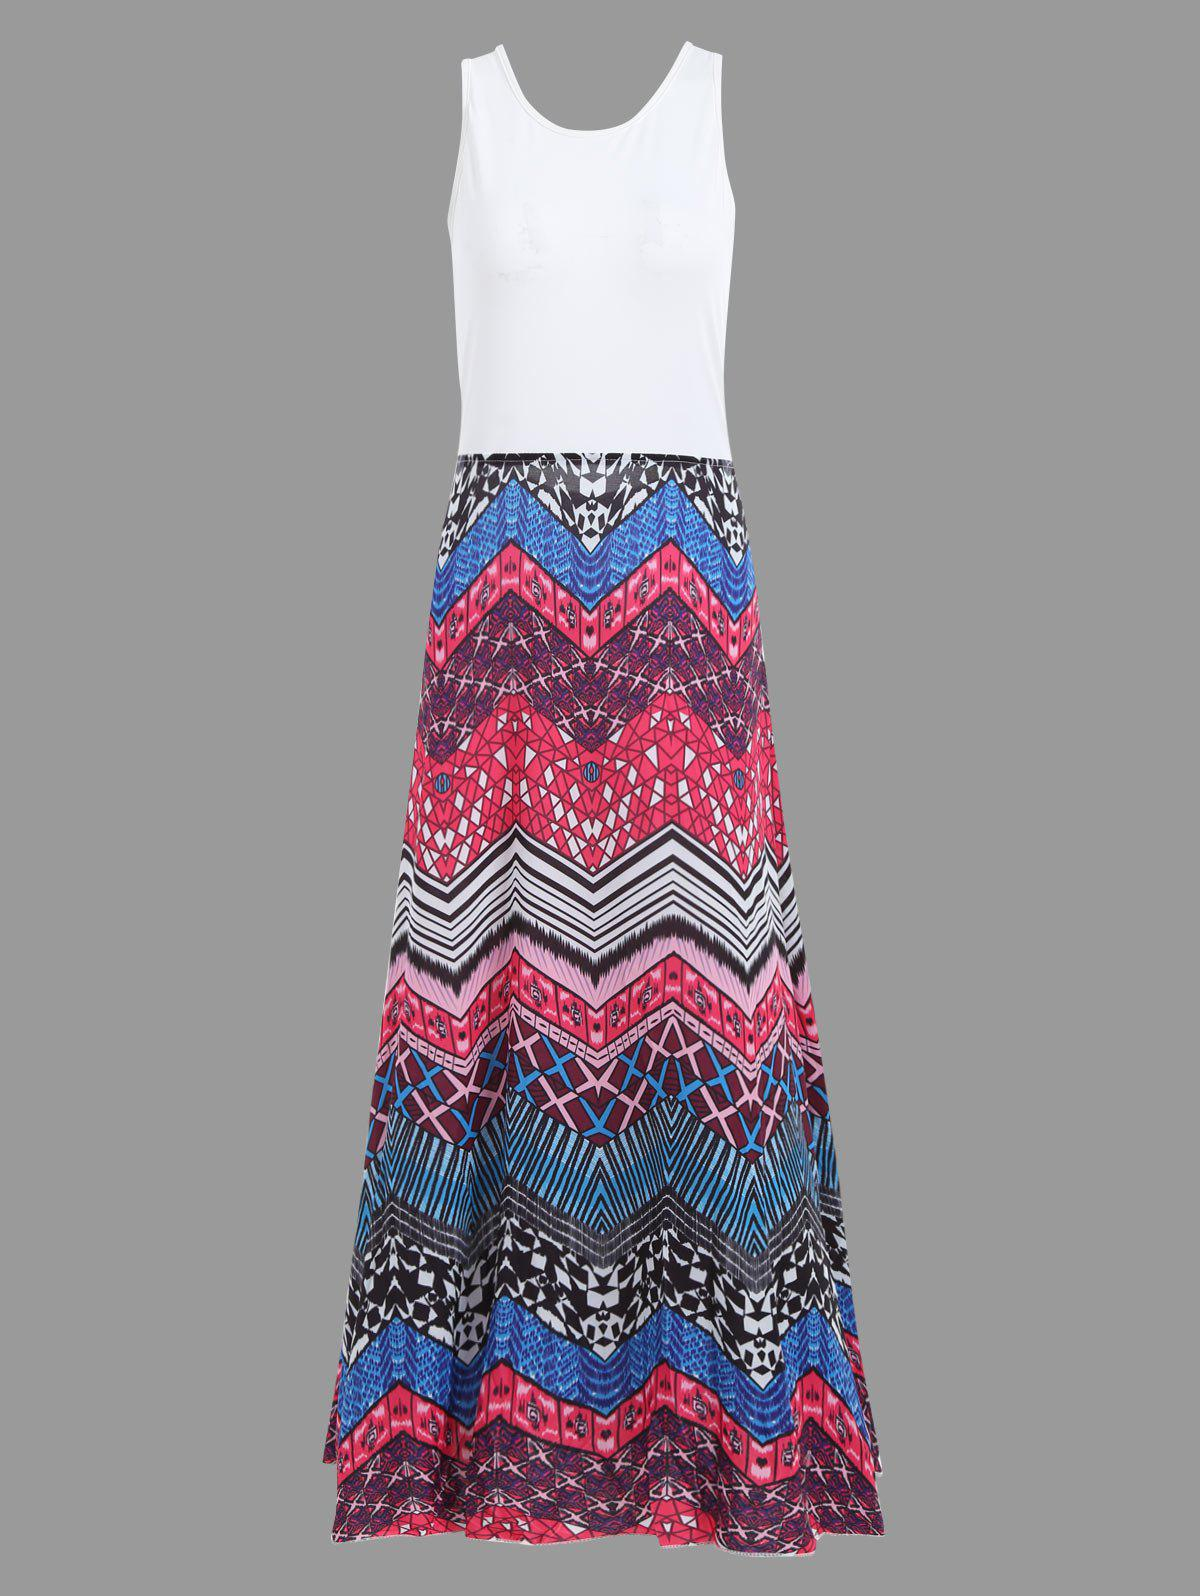 Boho Crisscross Printed A Line Floor Length Dress stylish solid color batwing sleeve asymmetrical tops for women